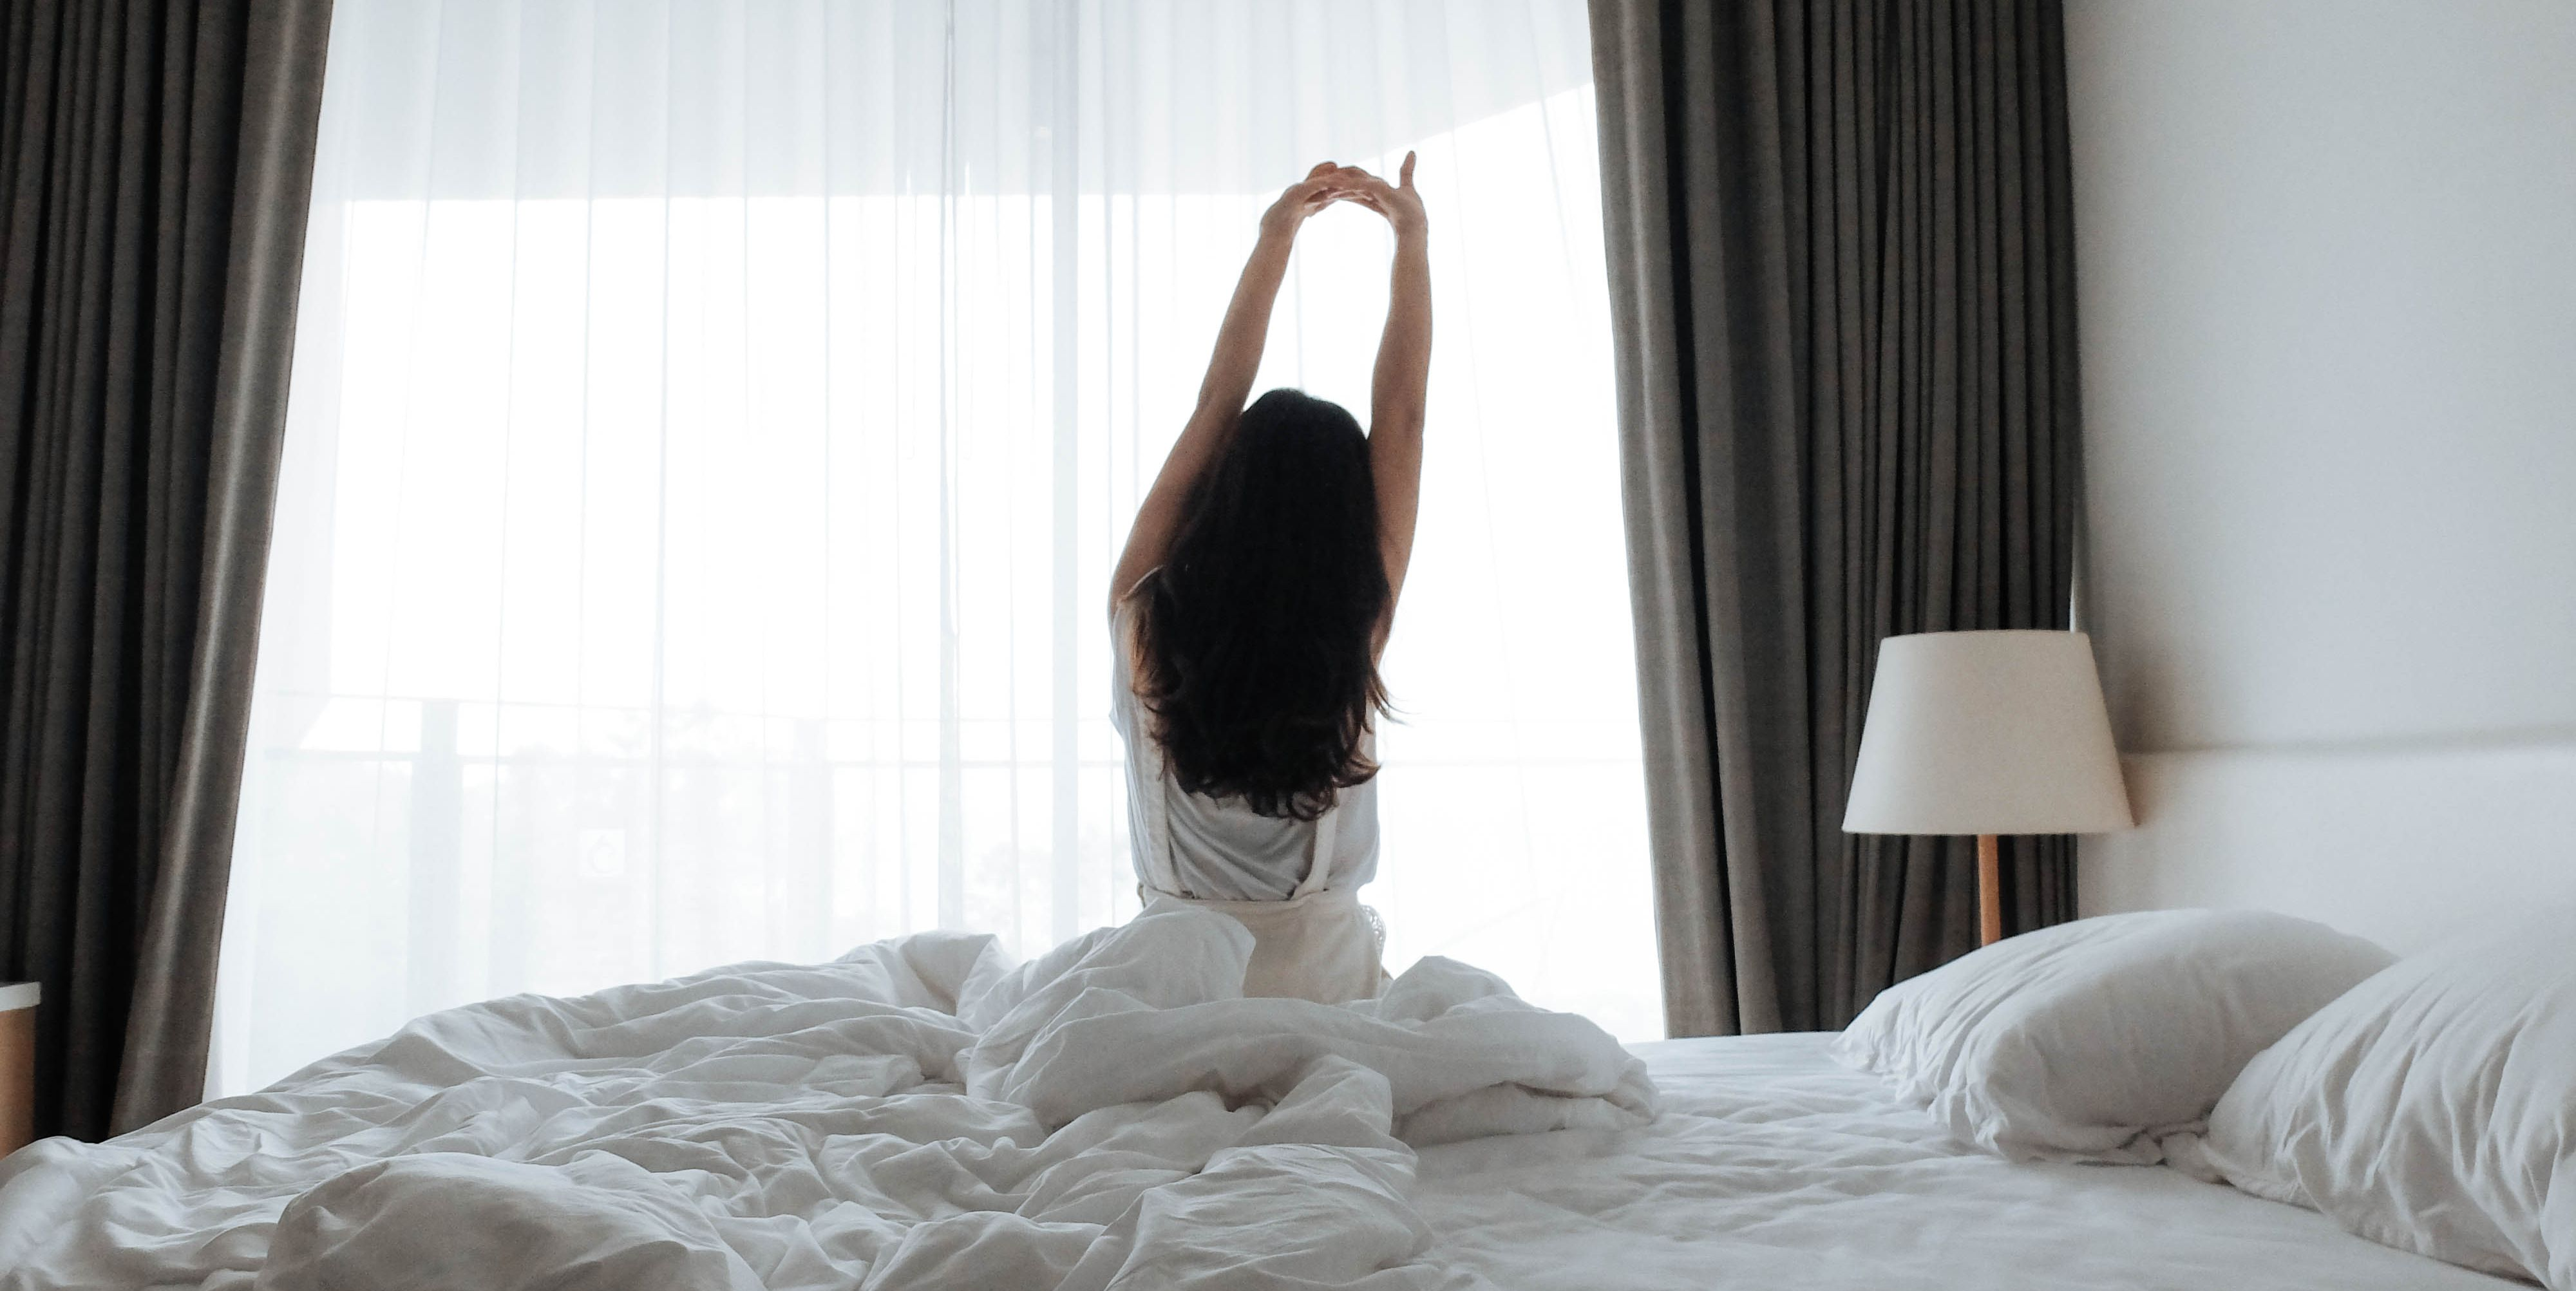 Rear View Of Woman Relaxing On Bed At Home